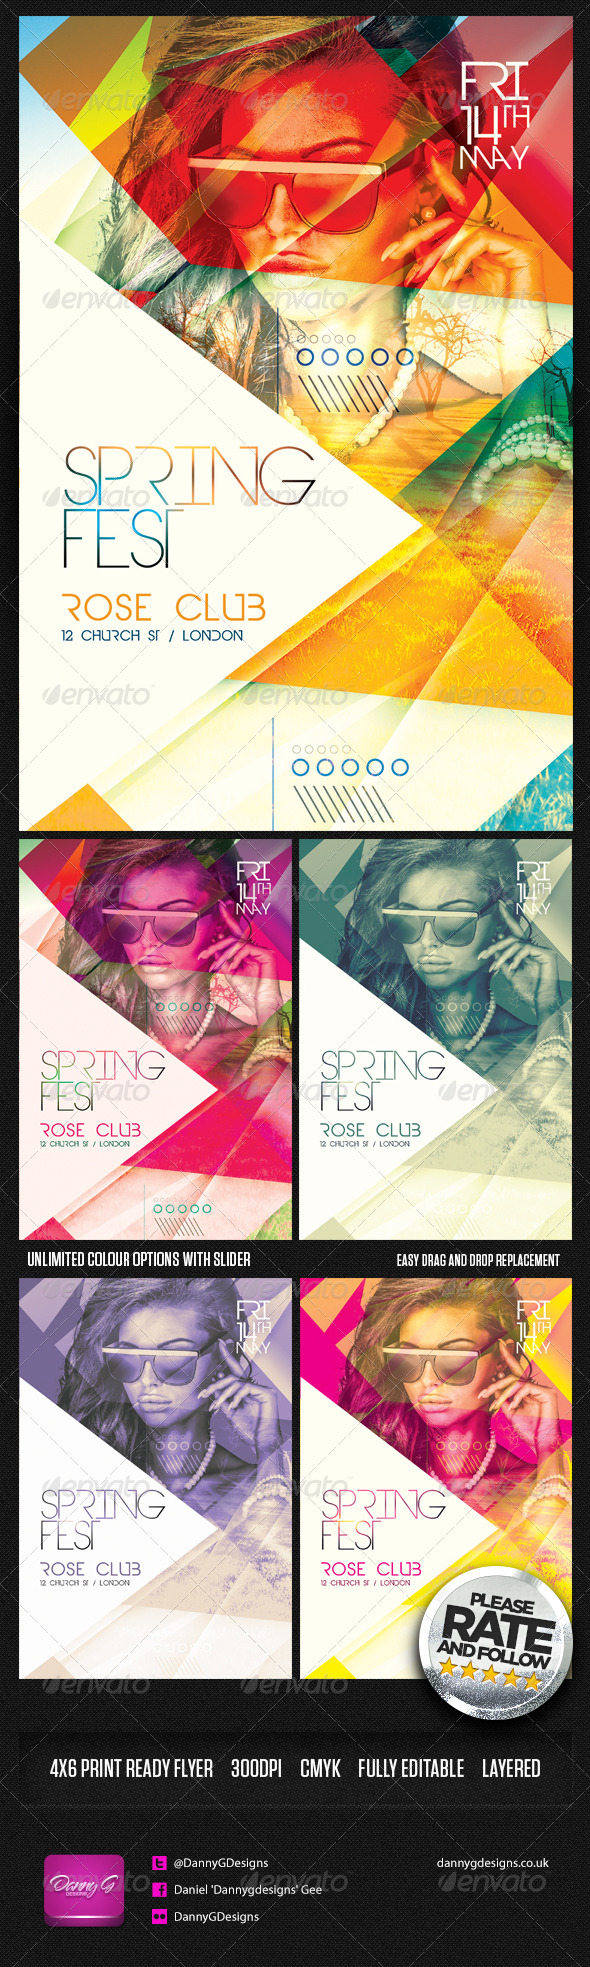 GraphicRiver Spring Fest Flyer Template PSD 7167472